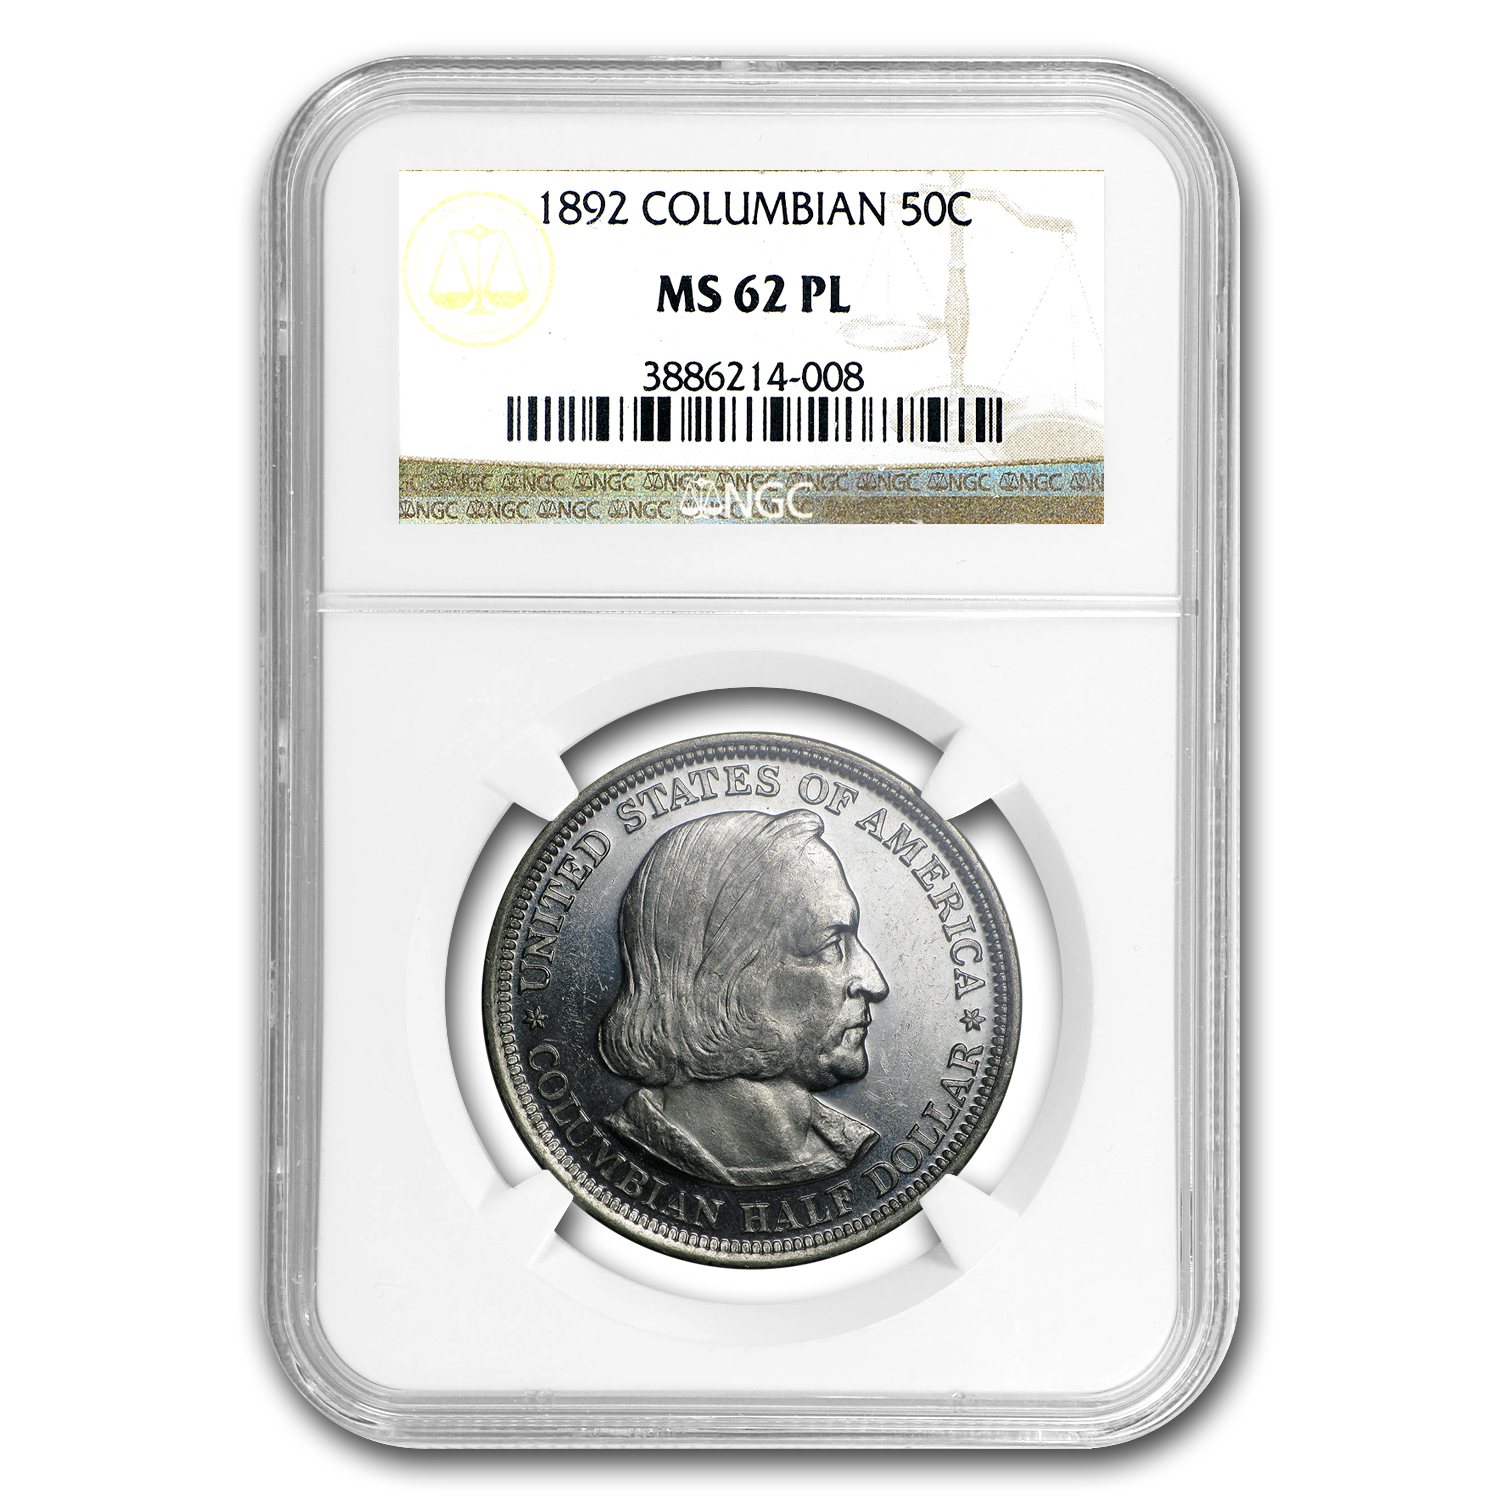 1892 Columbian Expo Half Dollar MS-62 PL NGC